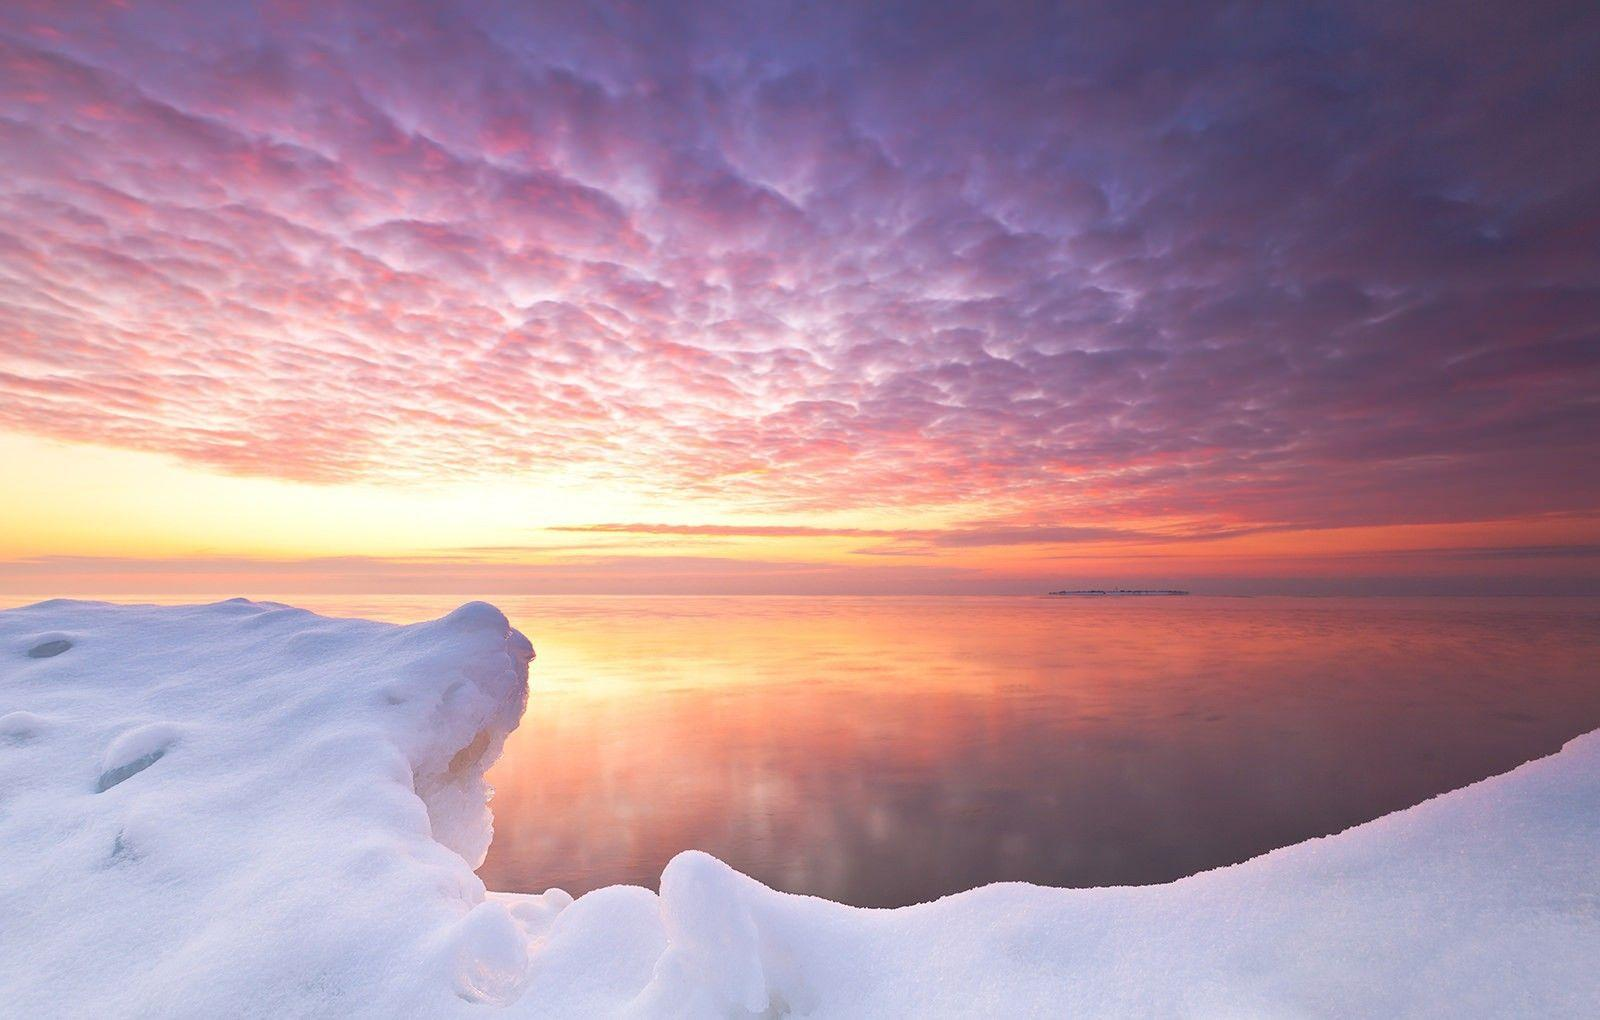 Pink sunset in Antarctica wallpapers and images - wallpapers ...